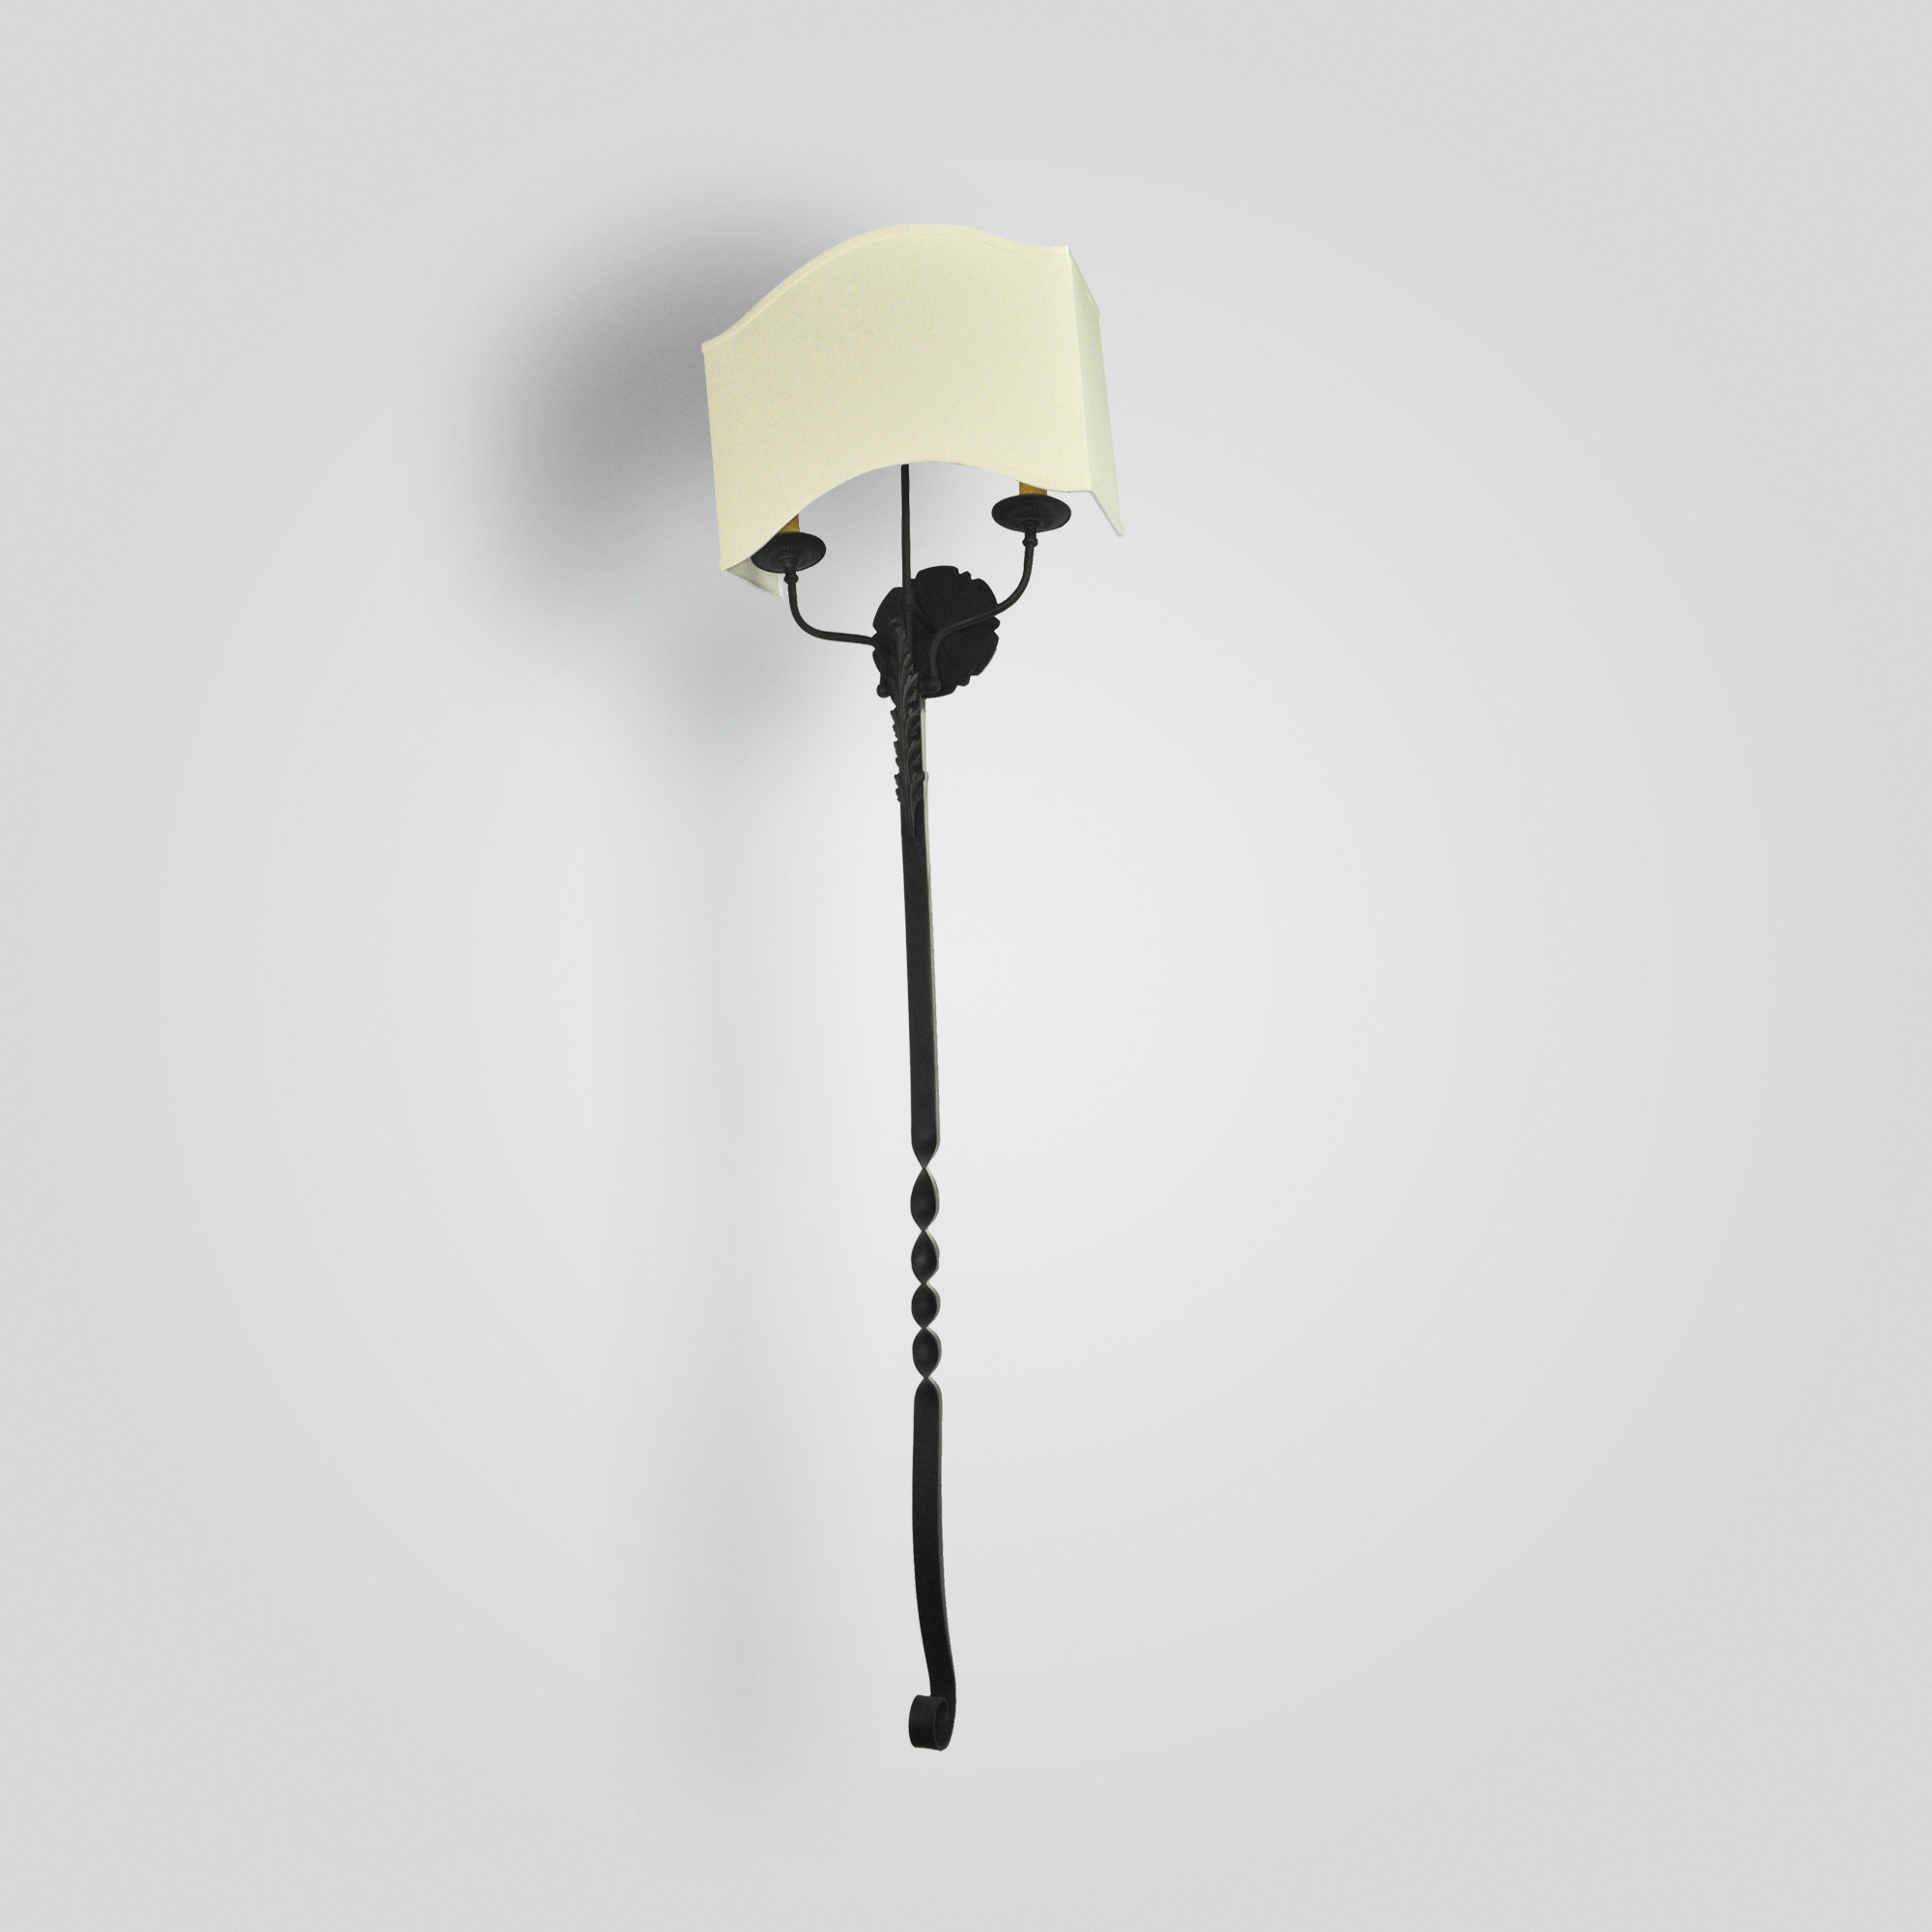 5000-cb2-ir-s-ba – ADG Lighting Collection